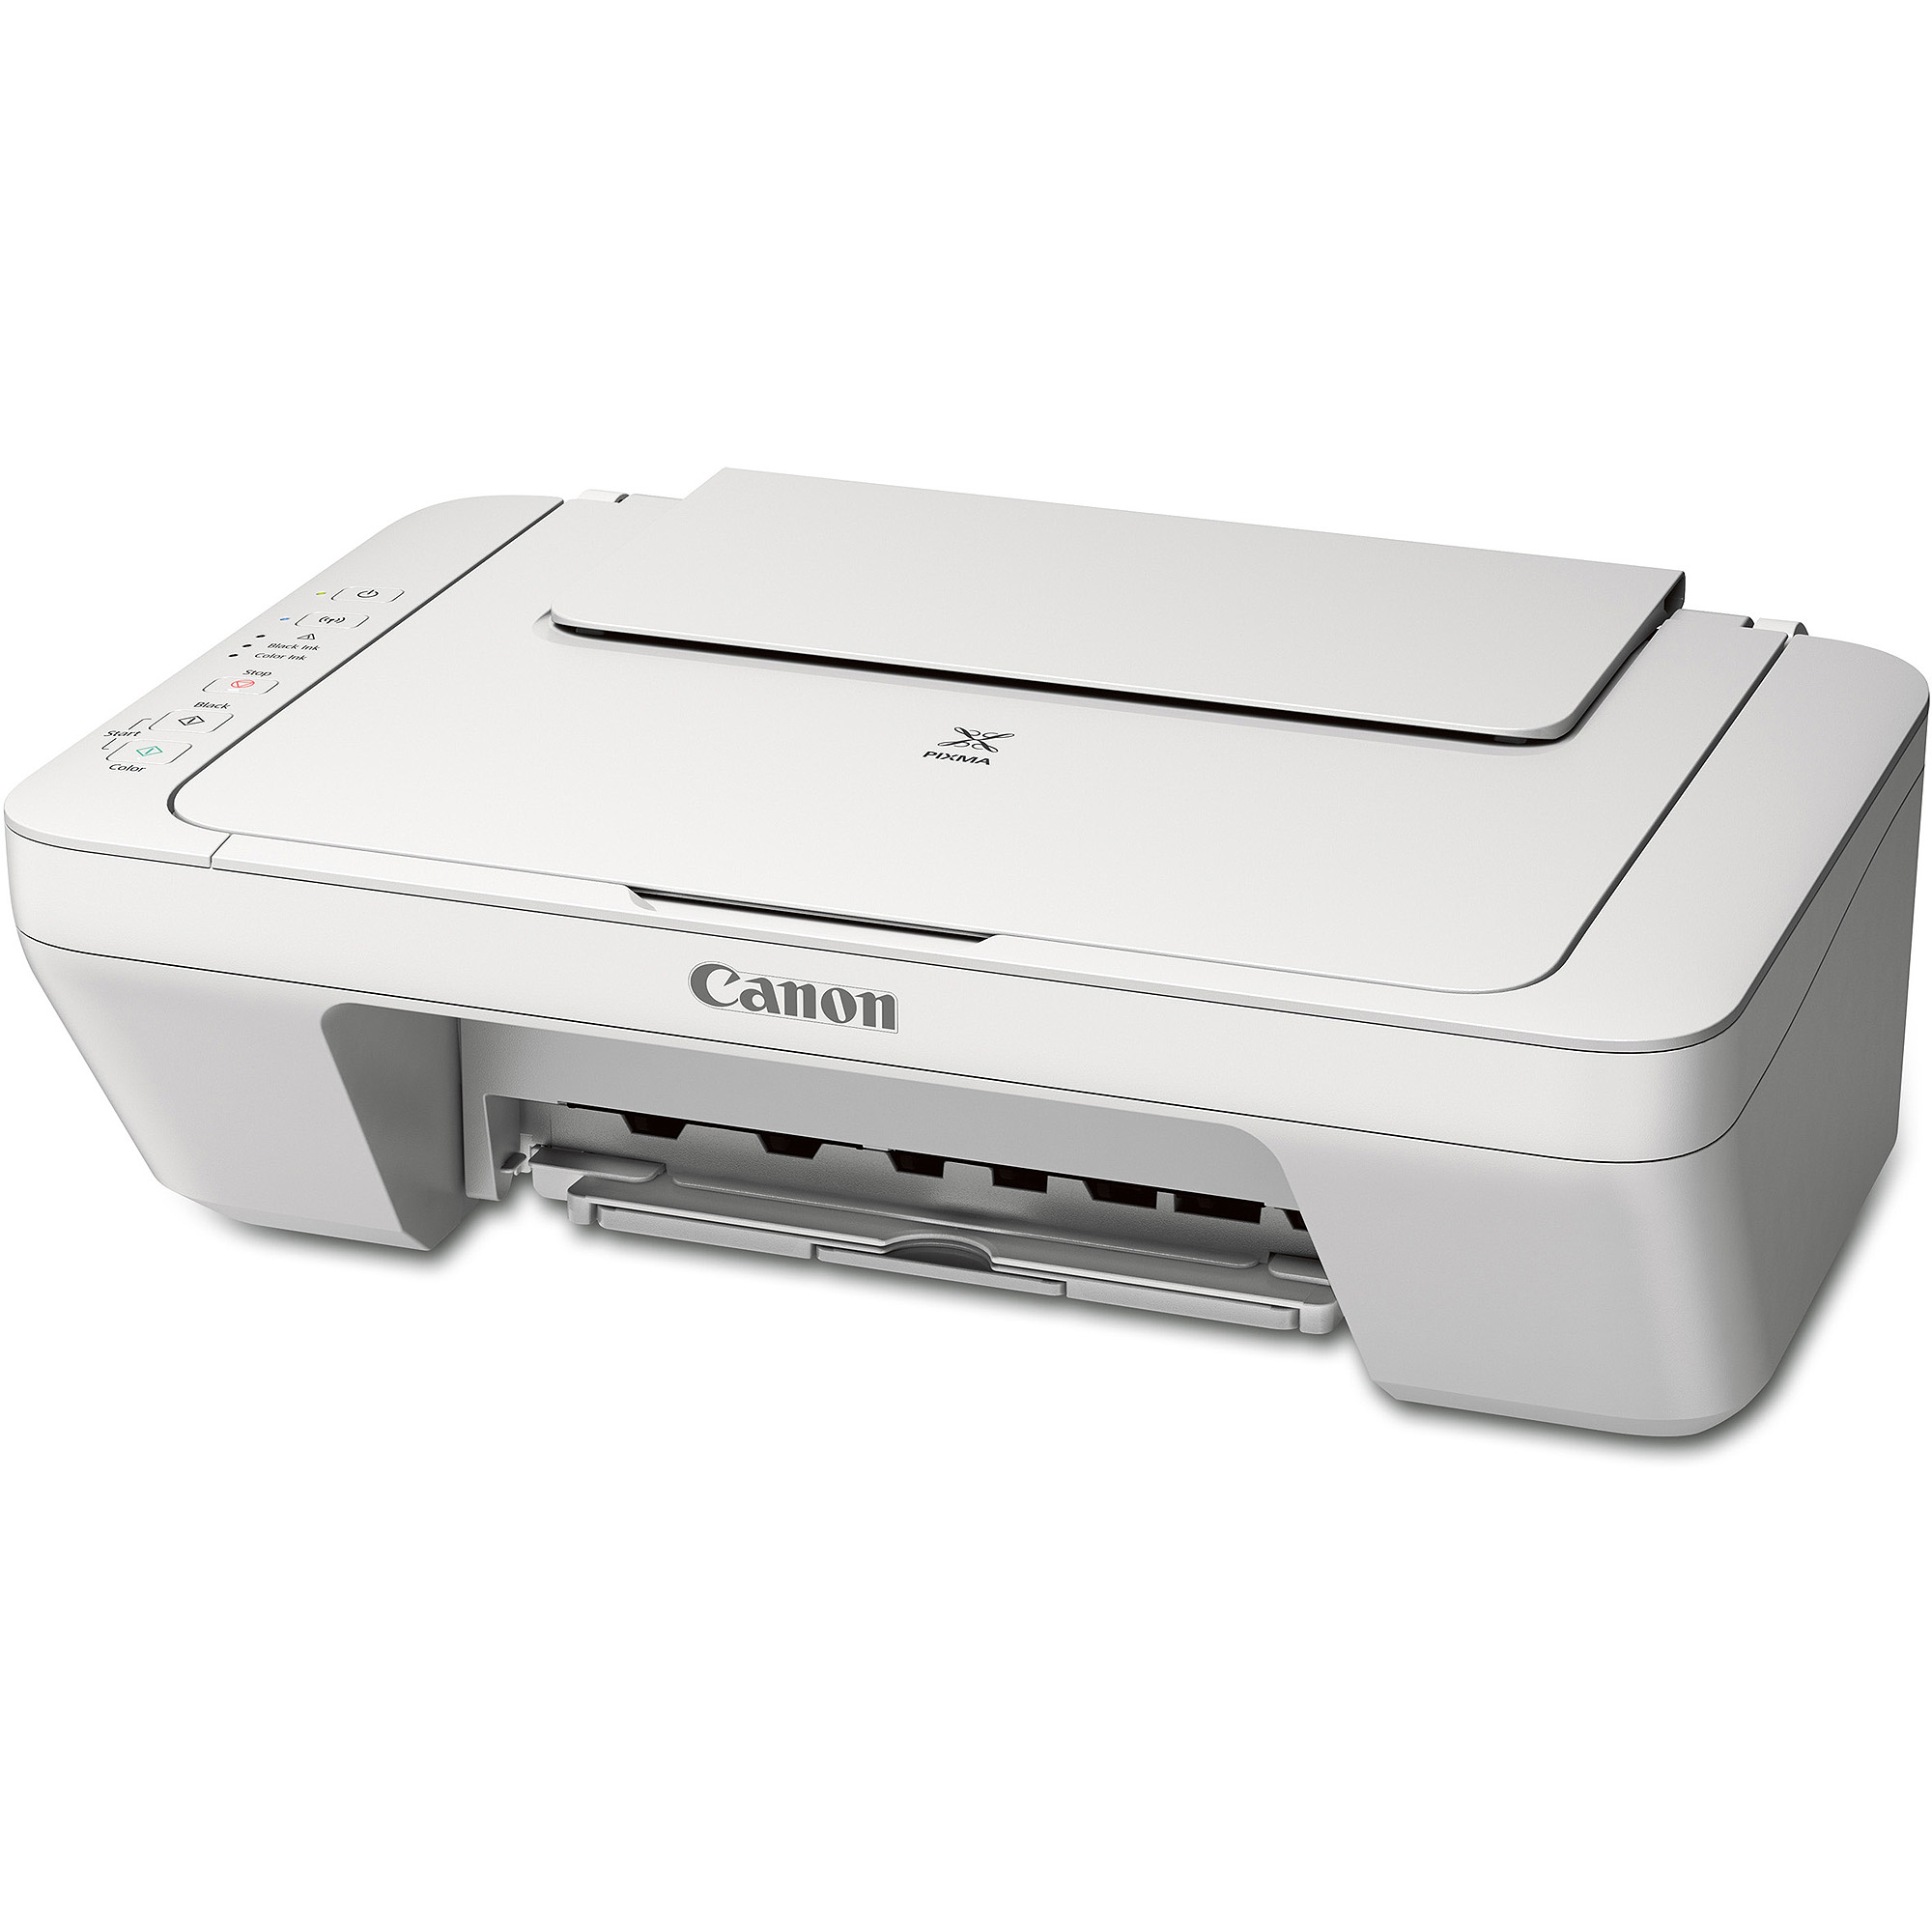 Canon PIXMA MG2920 Wireless Inkjet All-in-One Printer/Copier/Scanner, White